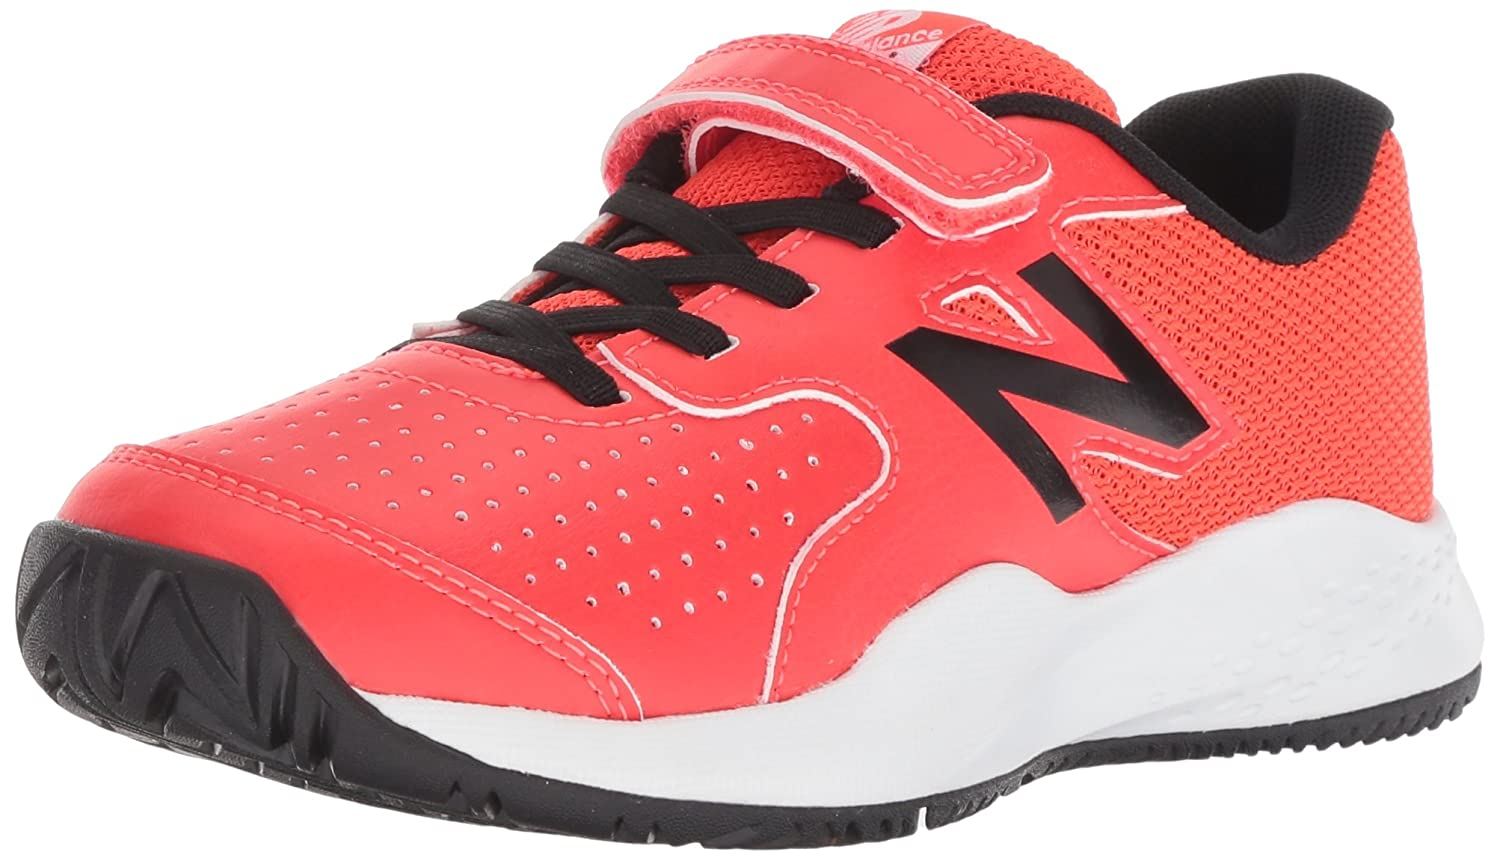 New Balance Kids' 696v3 Hard Court Tennis Shoe